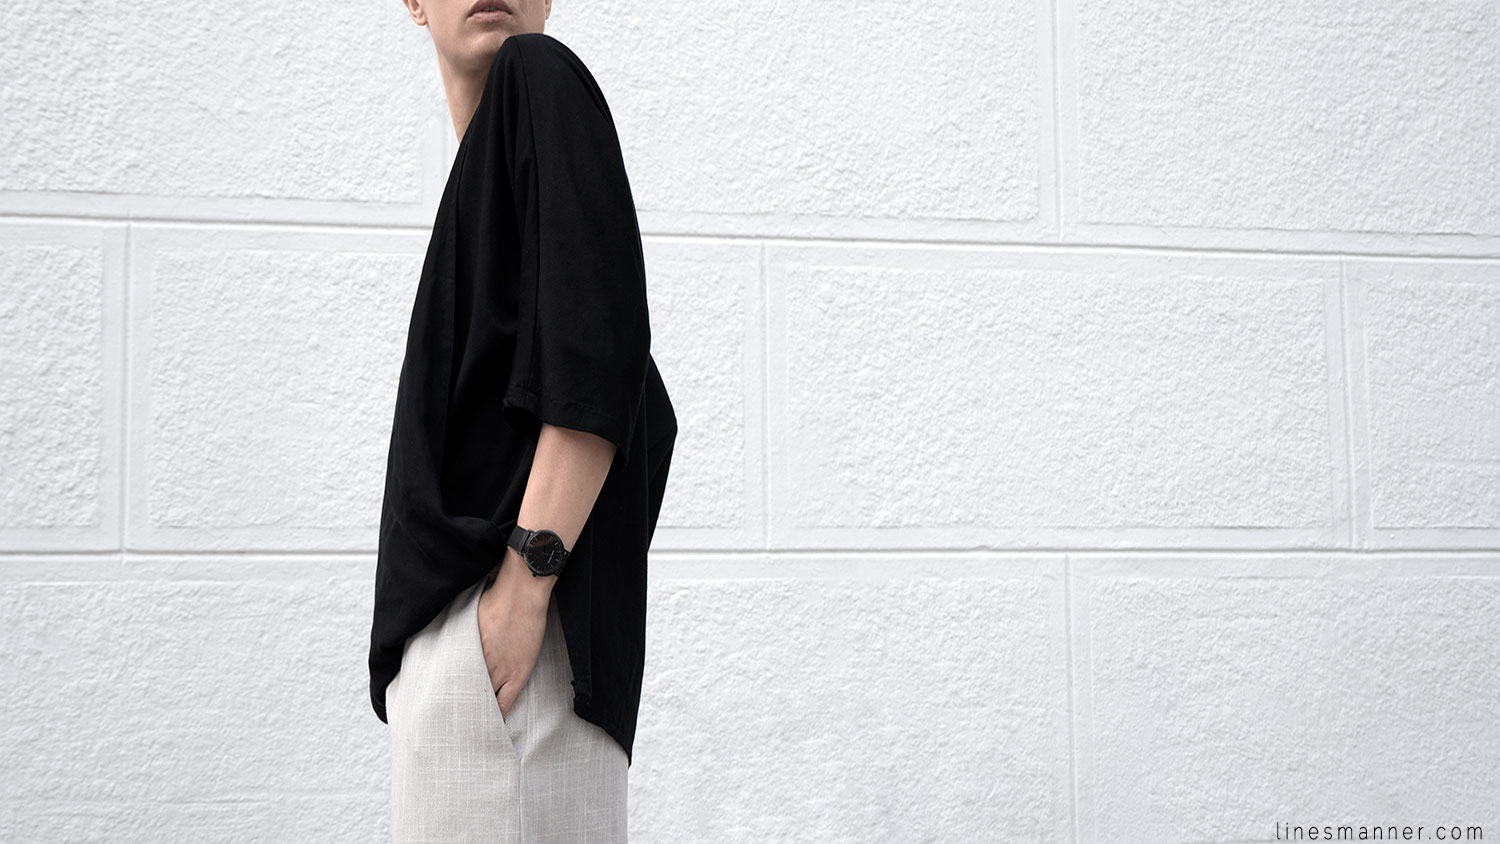 Lines-Manner-Modern-Minimal-Effortless-Casual-Wide_Leg_Culotte-Coidlyn_Wight-Draped-Coton-Linen-Sustainable-Slow_Fashion-Neutrals-Structure-Volume-Fluid-Simplicity-Details-4